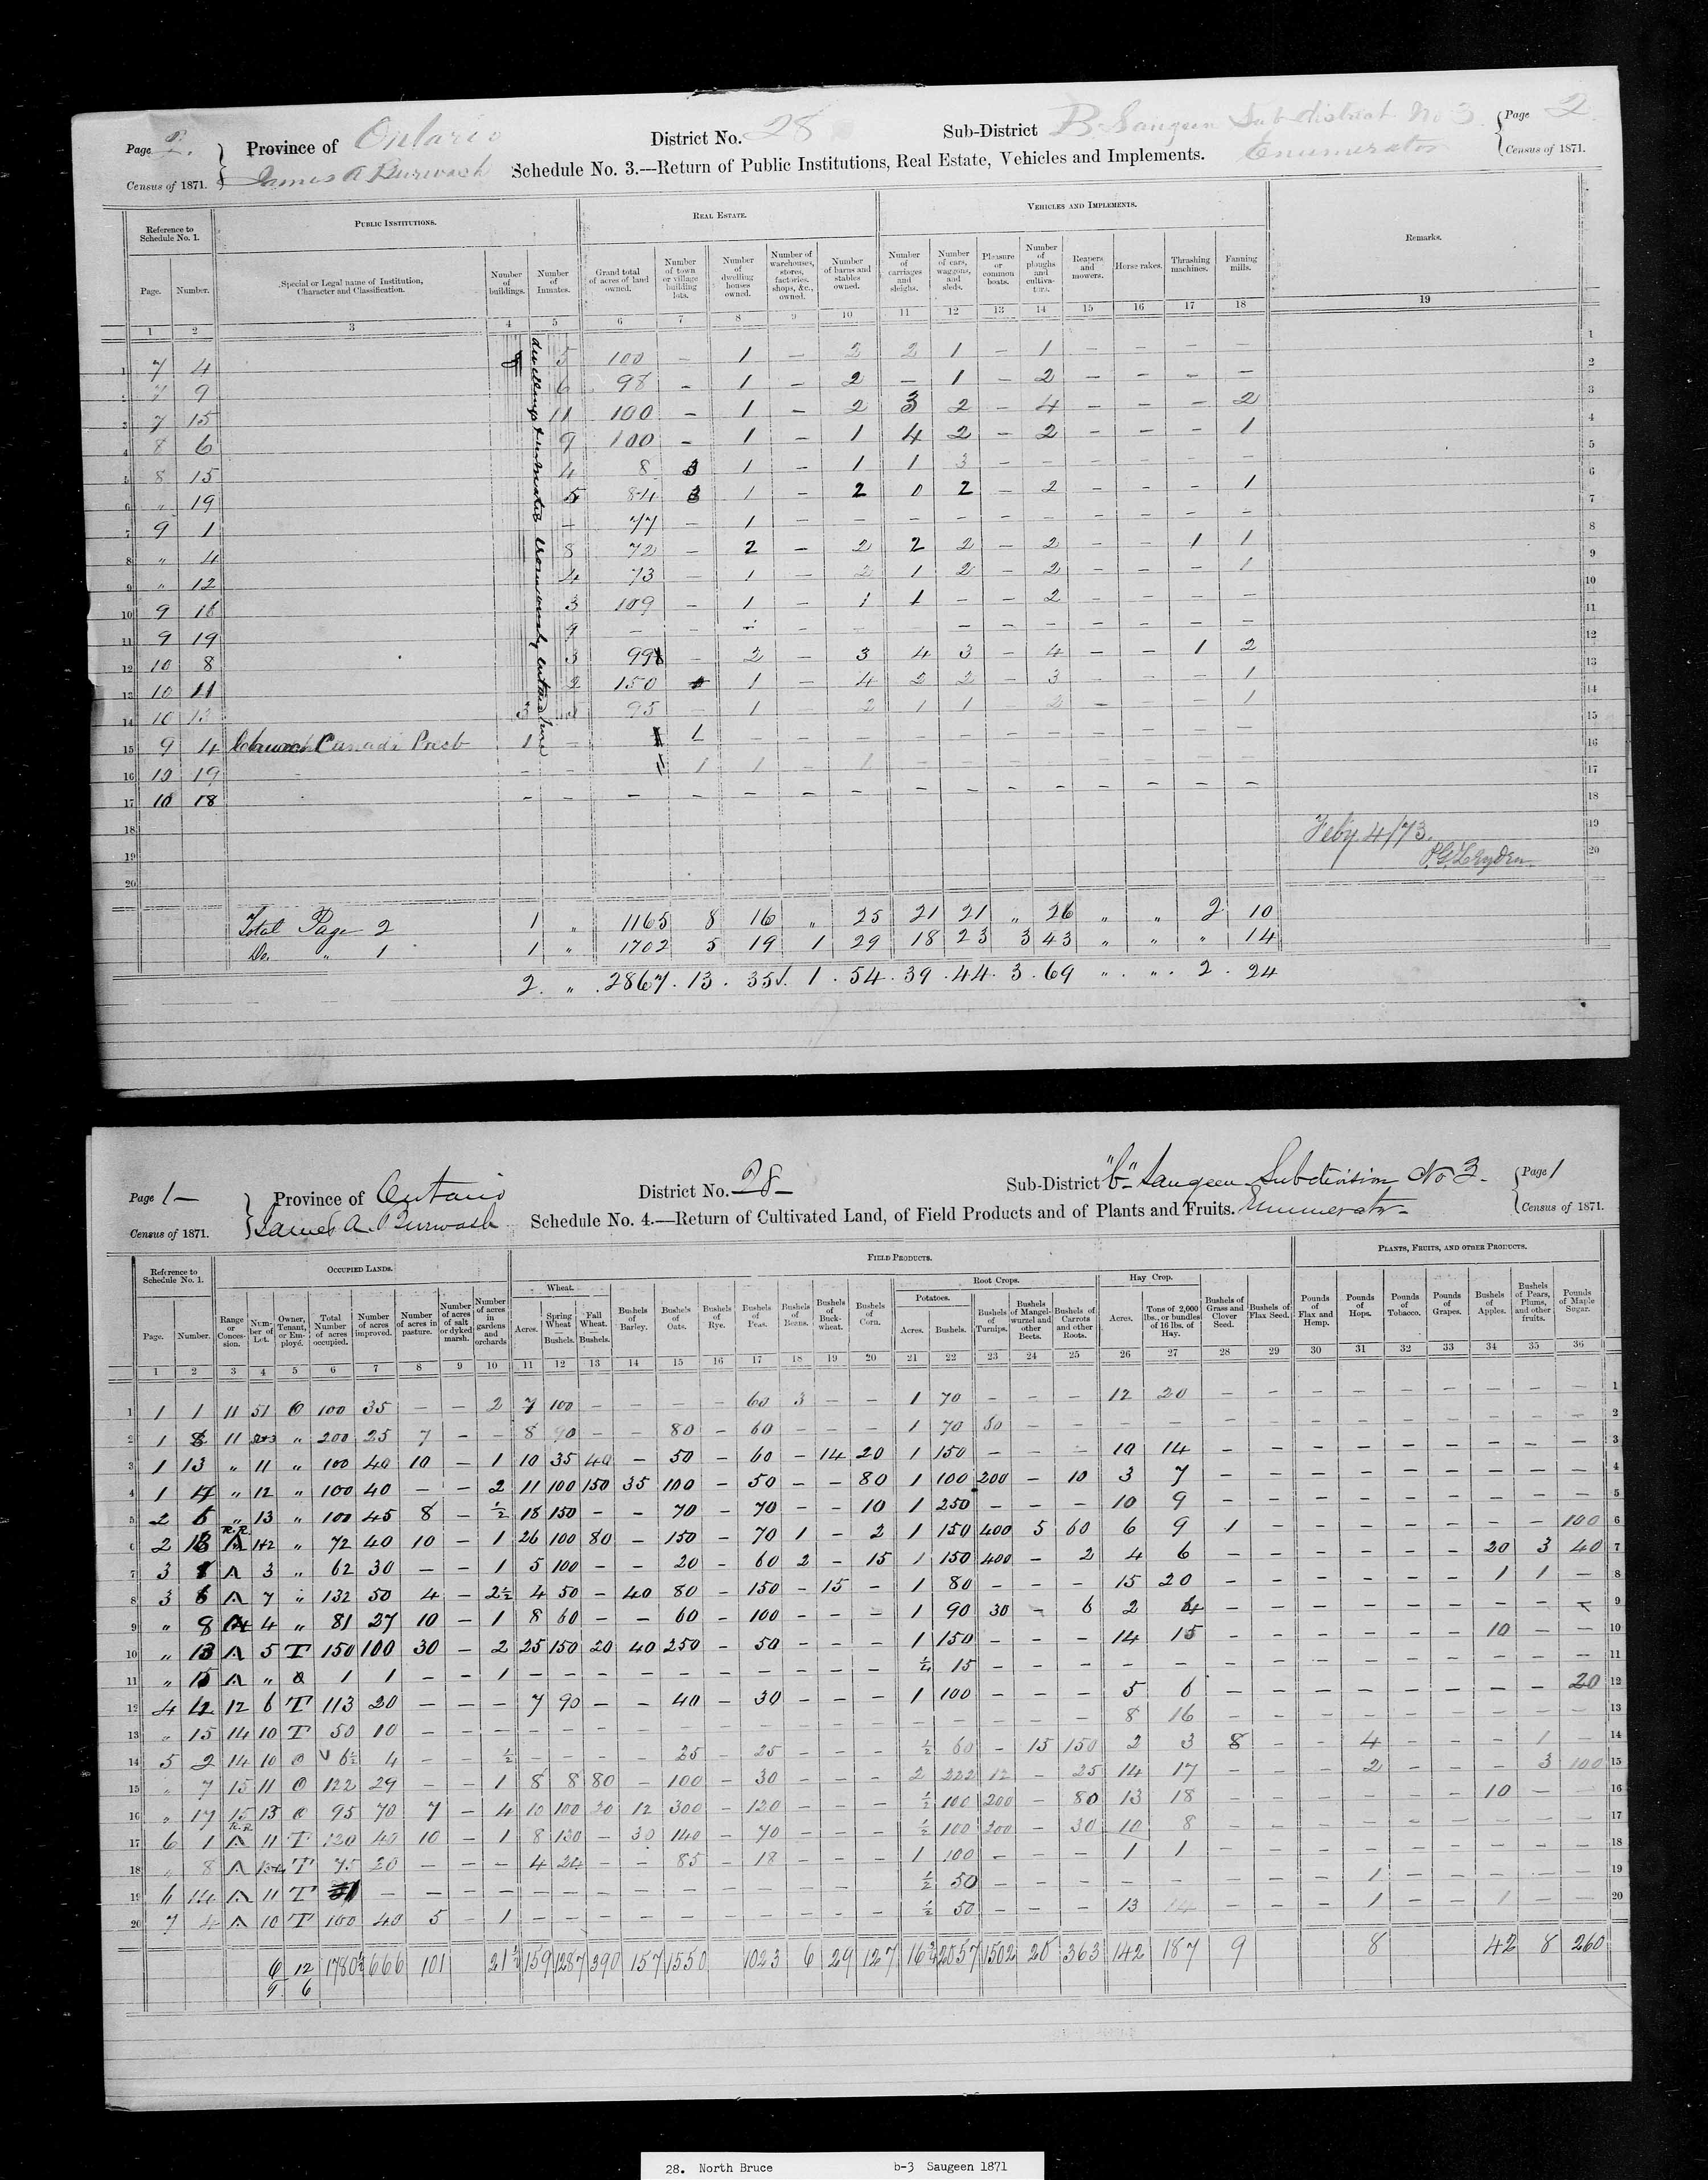 Title: Census of Canada, 1871 - Mikan Number: 142105 - Microform: c-9937